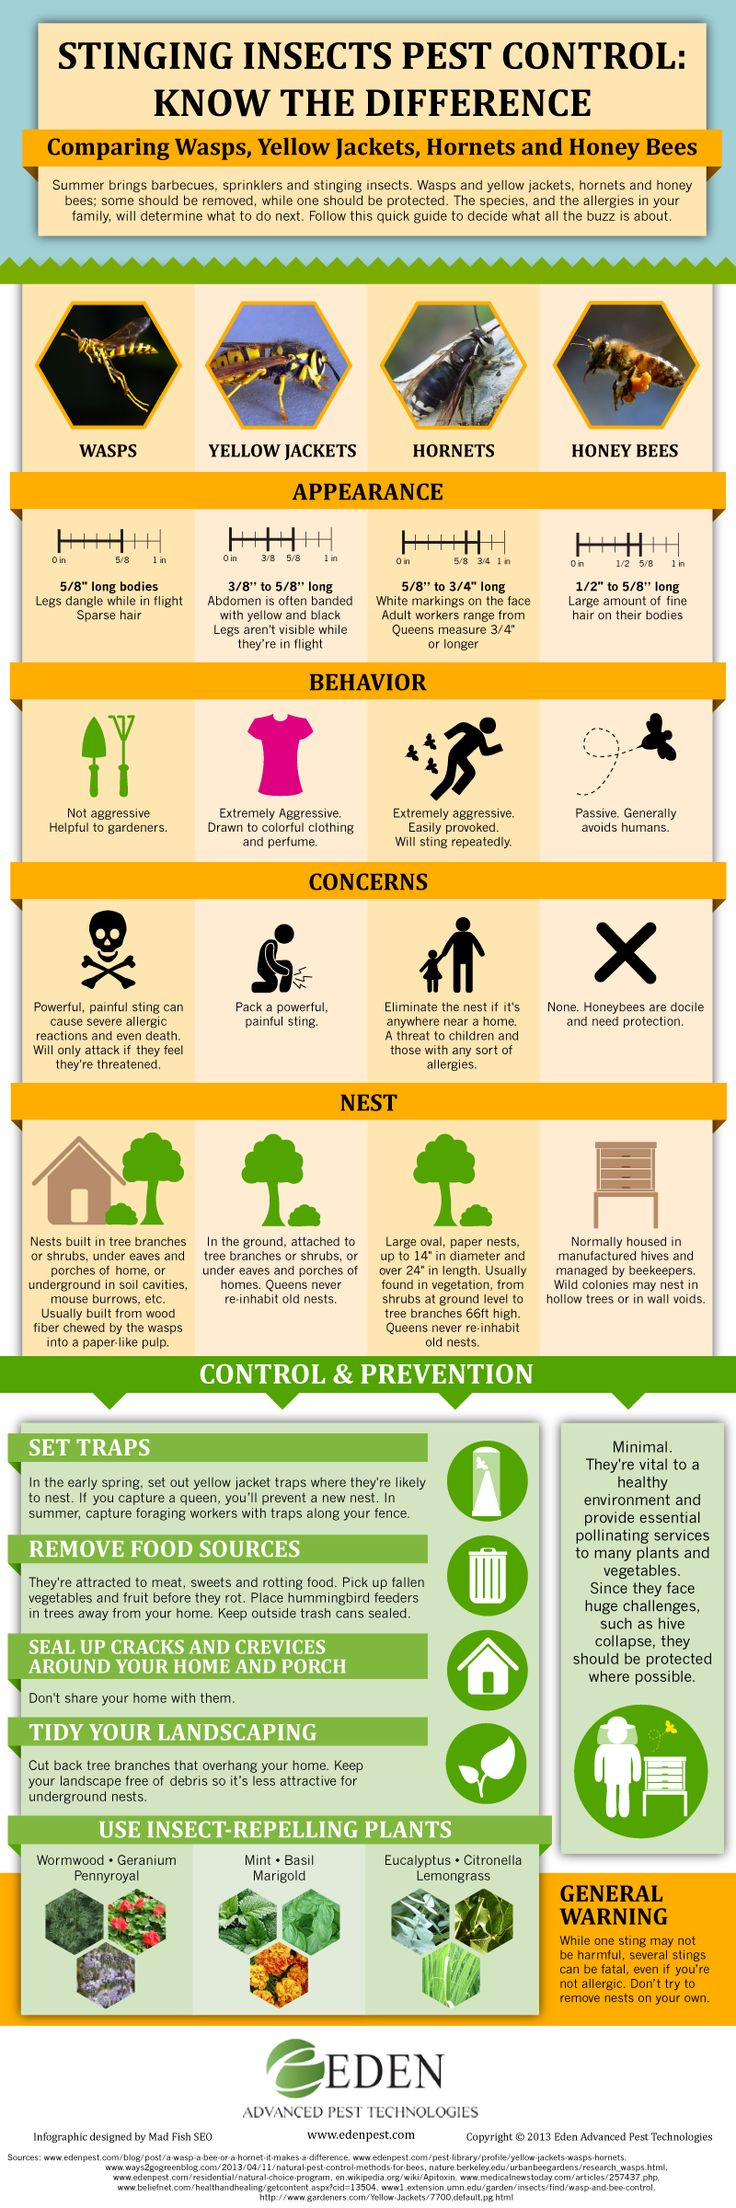 Stinging Insects Pest Control: Know the Difference - Comparing Wasps, Yellow Jackets, Hornets and Honey Bees